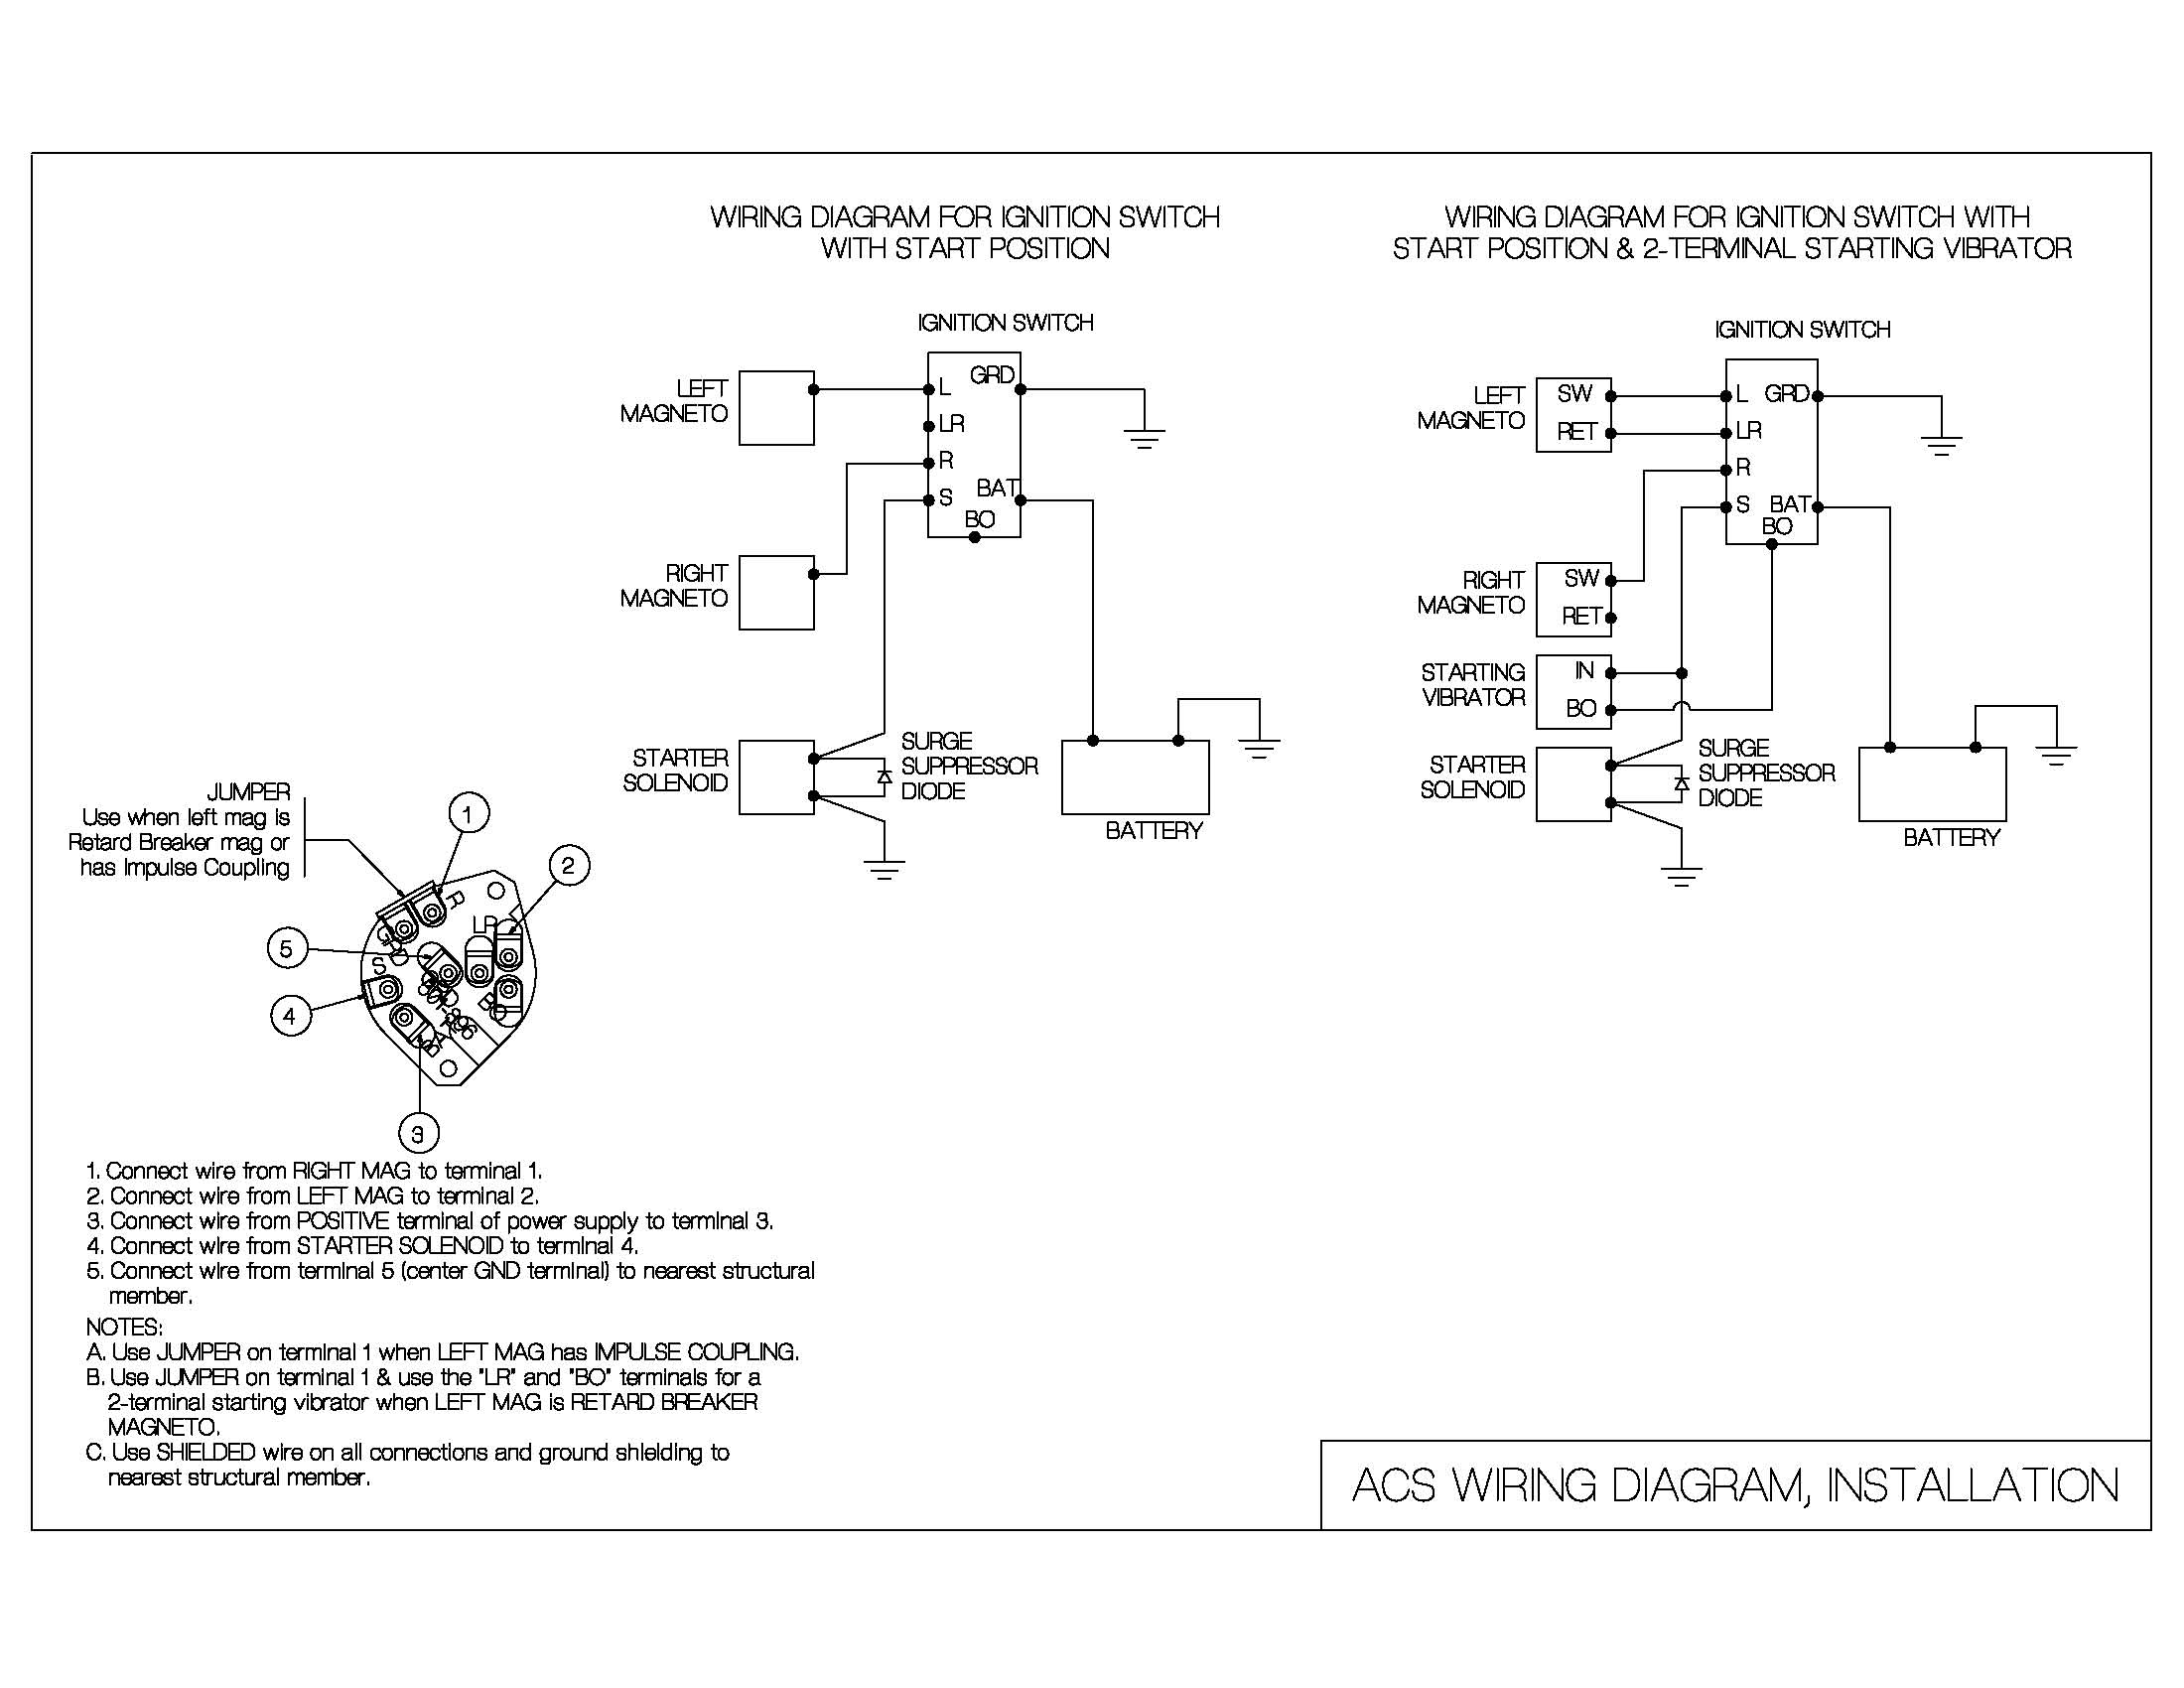 Wiring Diagram ignition switch wiring diagram acs products company terex hd1000 wiring diagram at mifinder.co